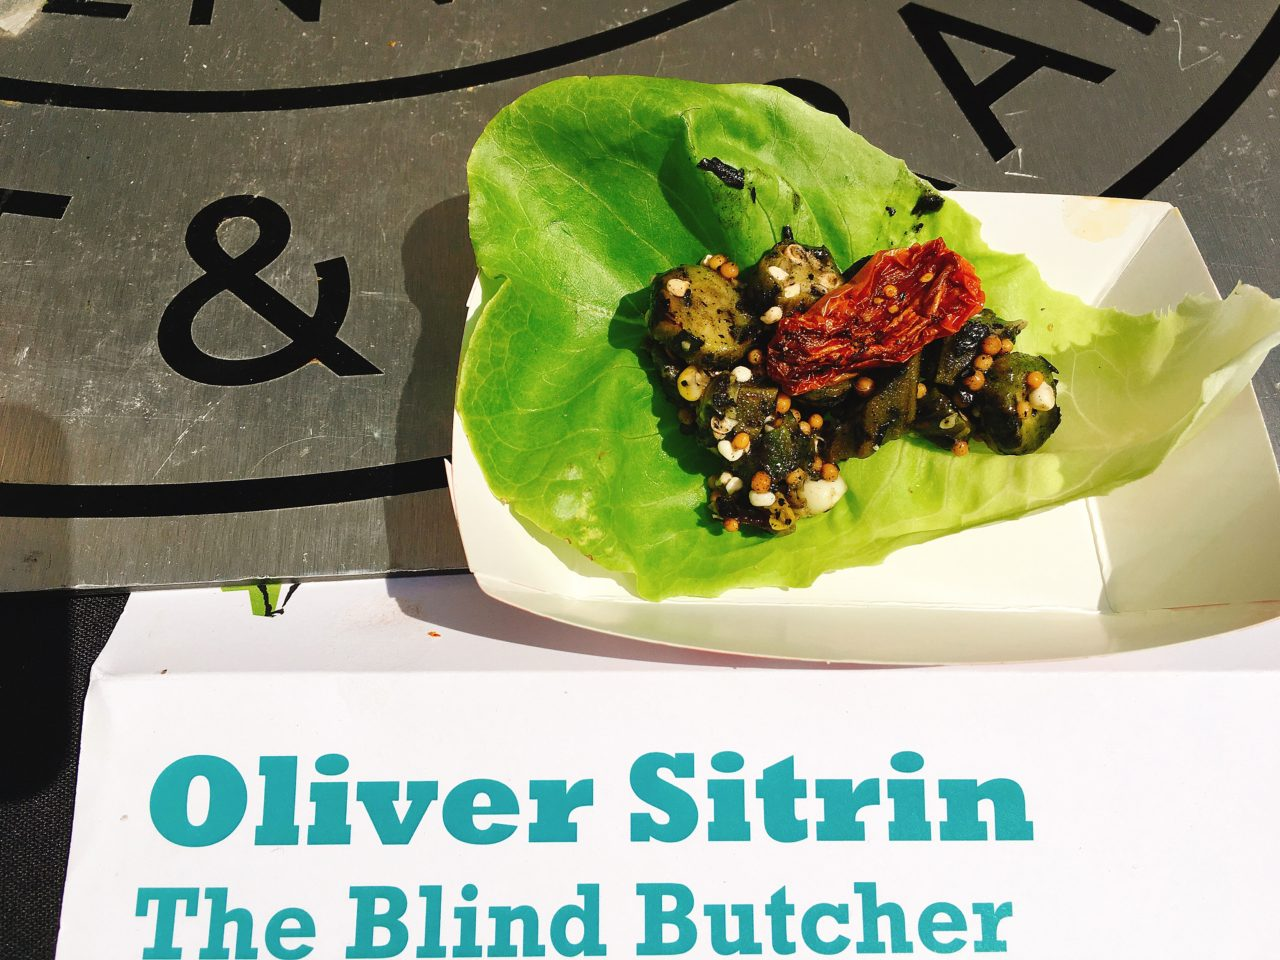 Okrapalooza 2017 - Chef Oliver Sitrin - The Blind Butcher - The GG List